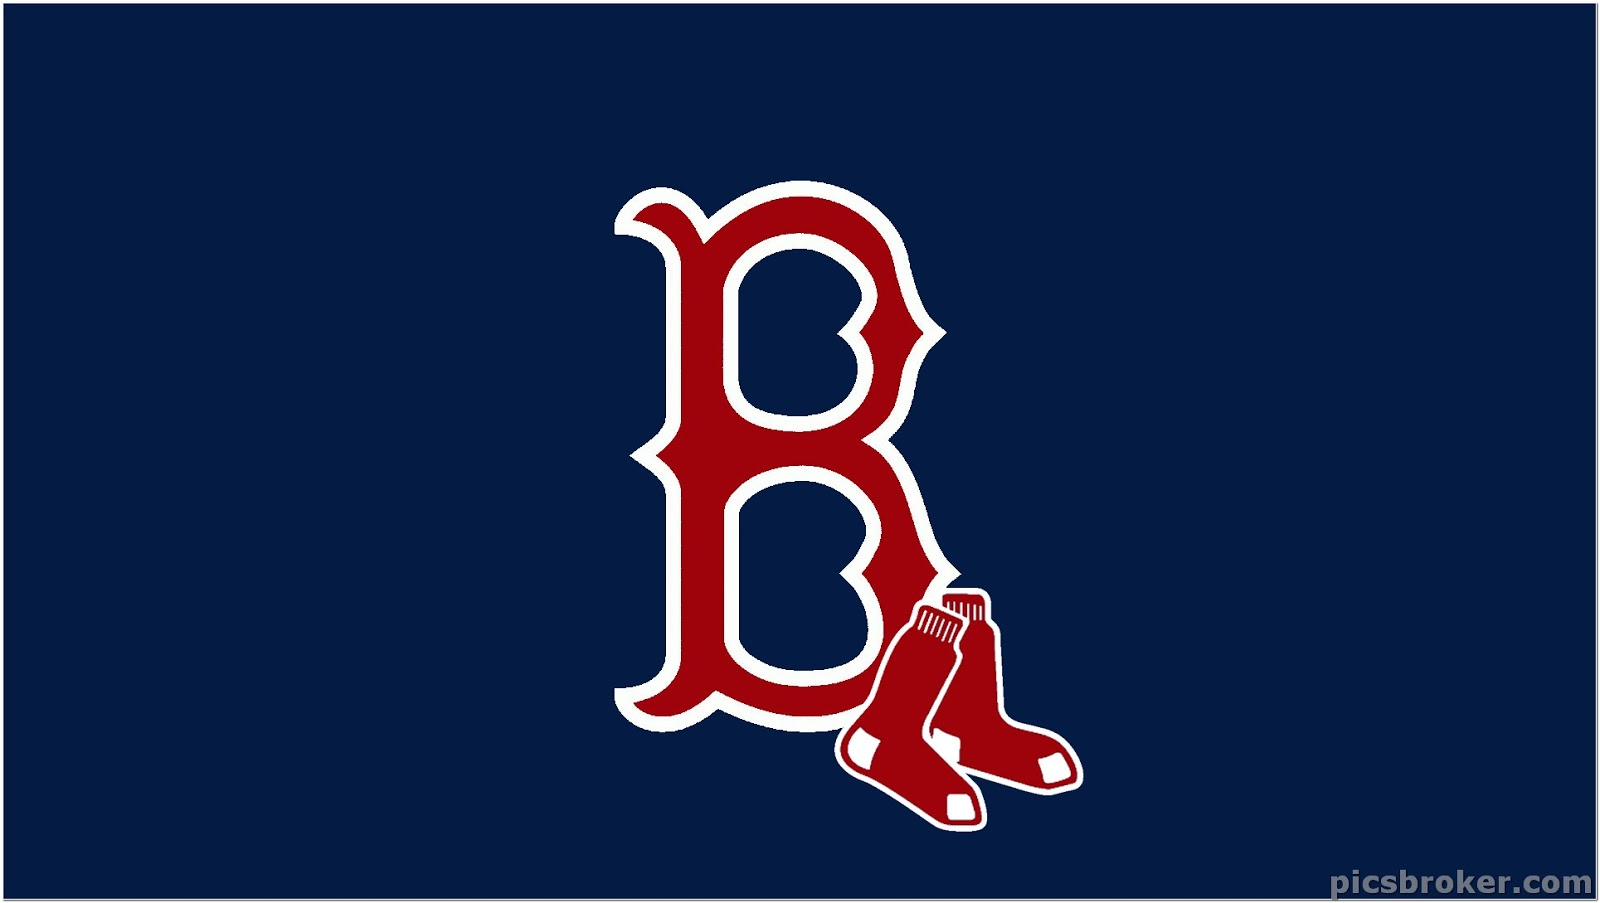 Boston red sox wallpapers desktop and laptop background boston red sox wallpapers desktop and laptop background voltagebd Image collections